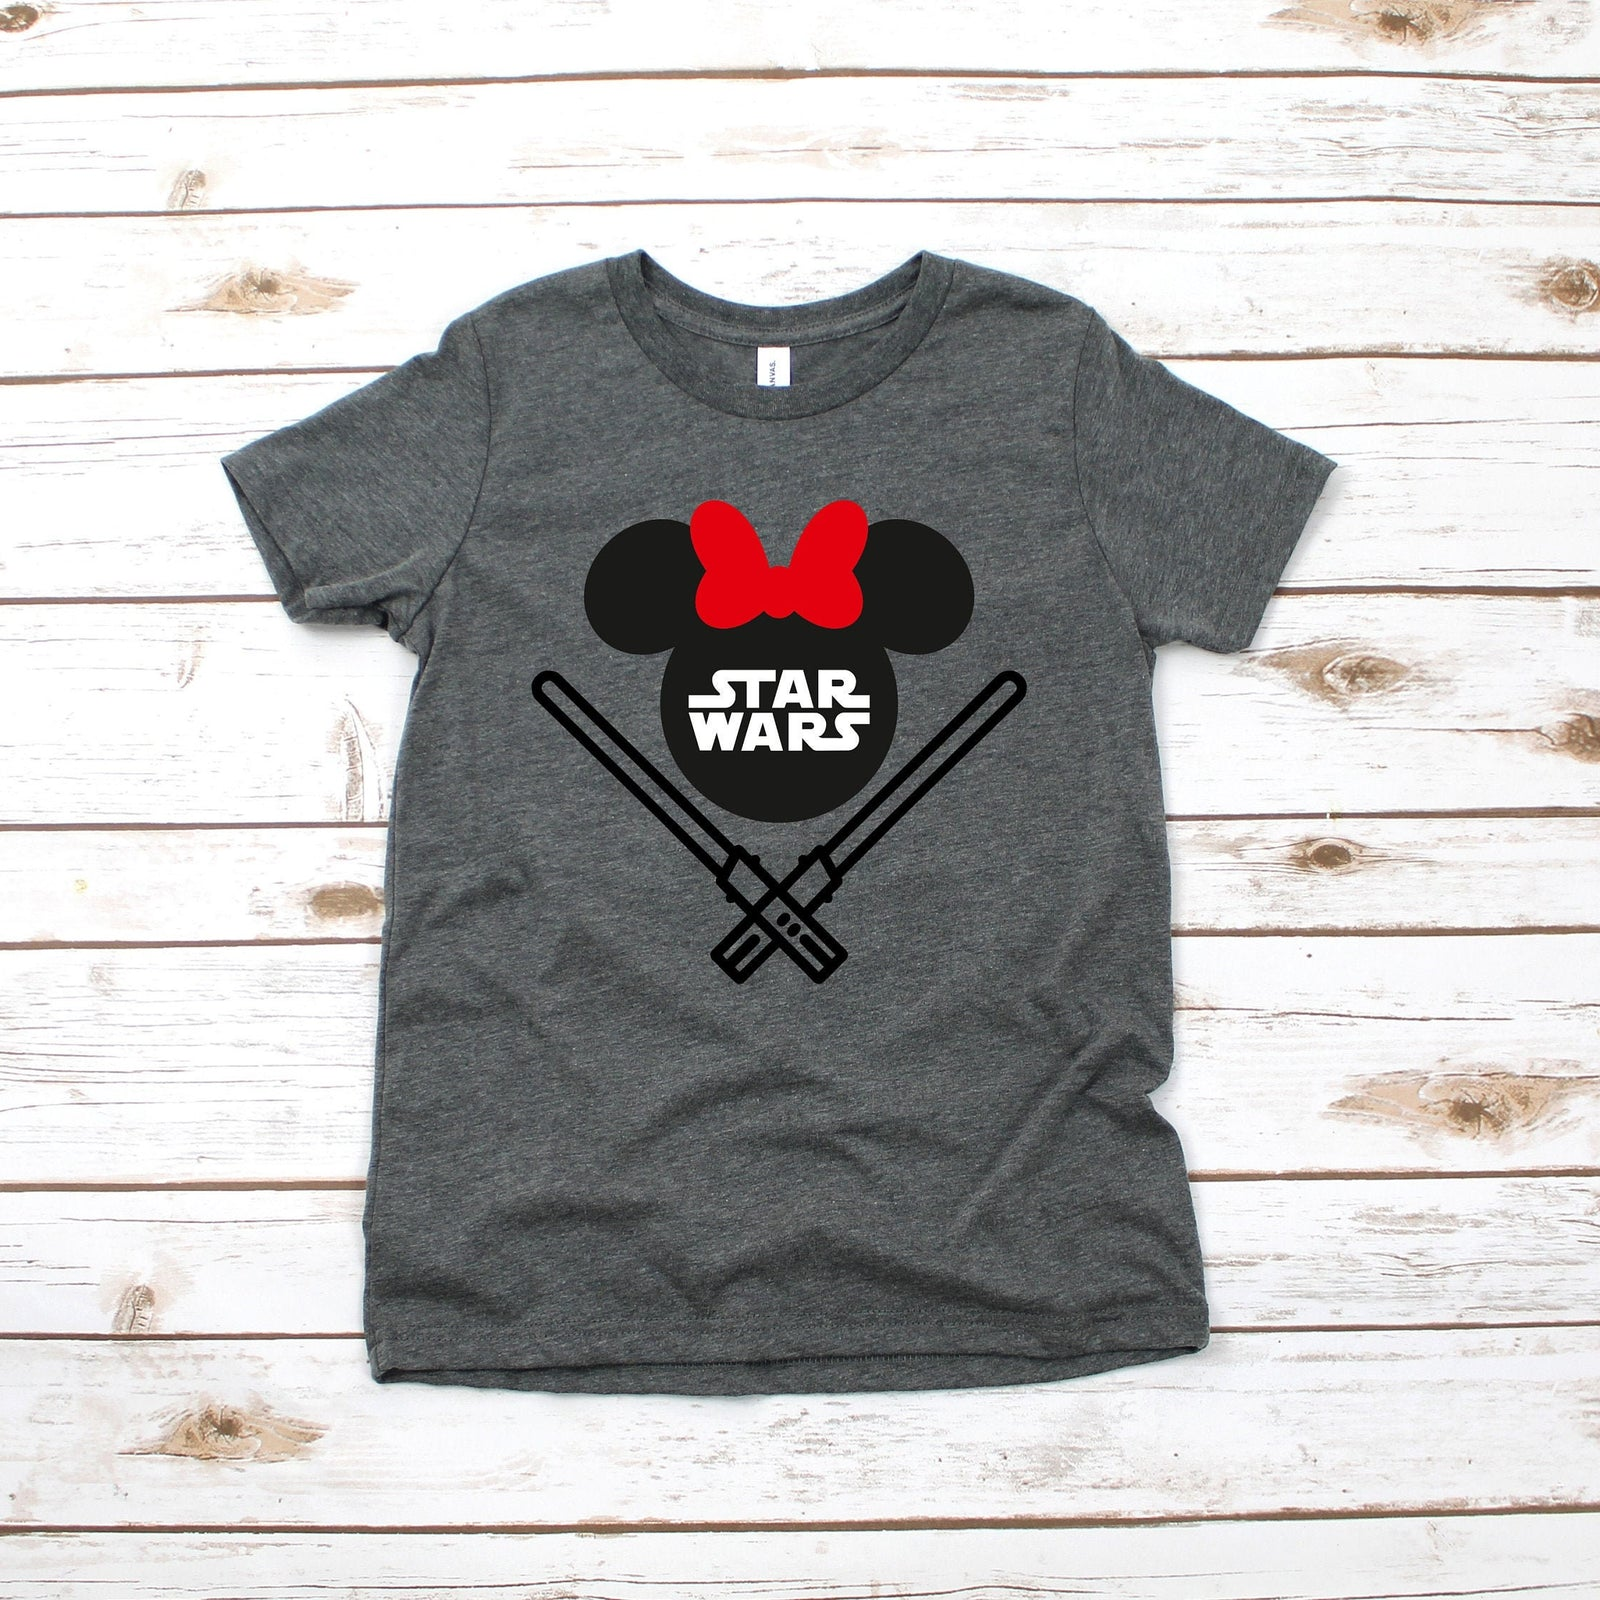 Star Wars Minnie Mouse Youth T Shirt - Disney Kids T Shirts - Star Wars Family Matching Shirts